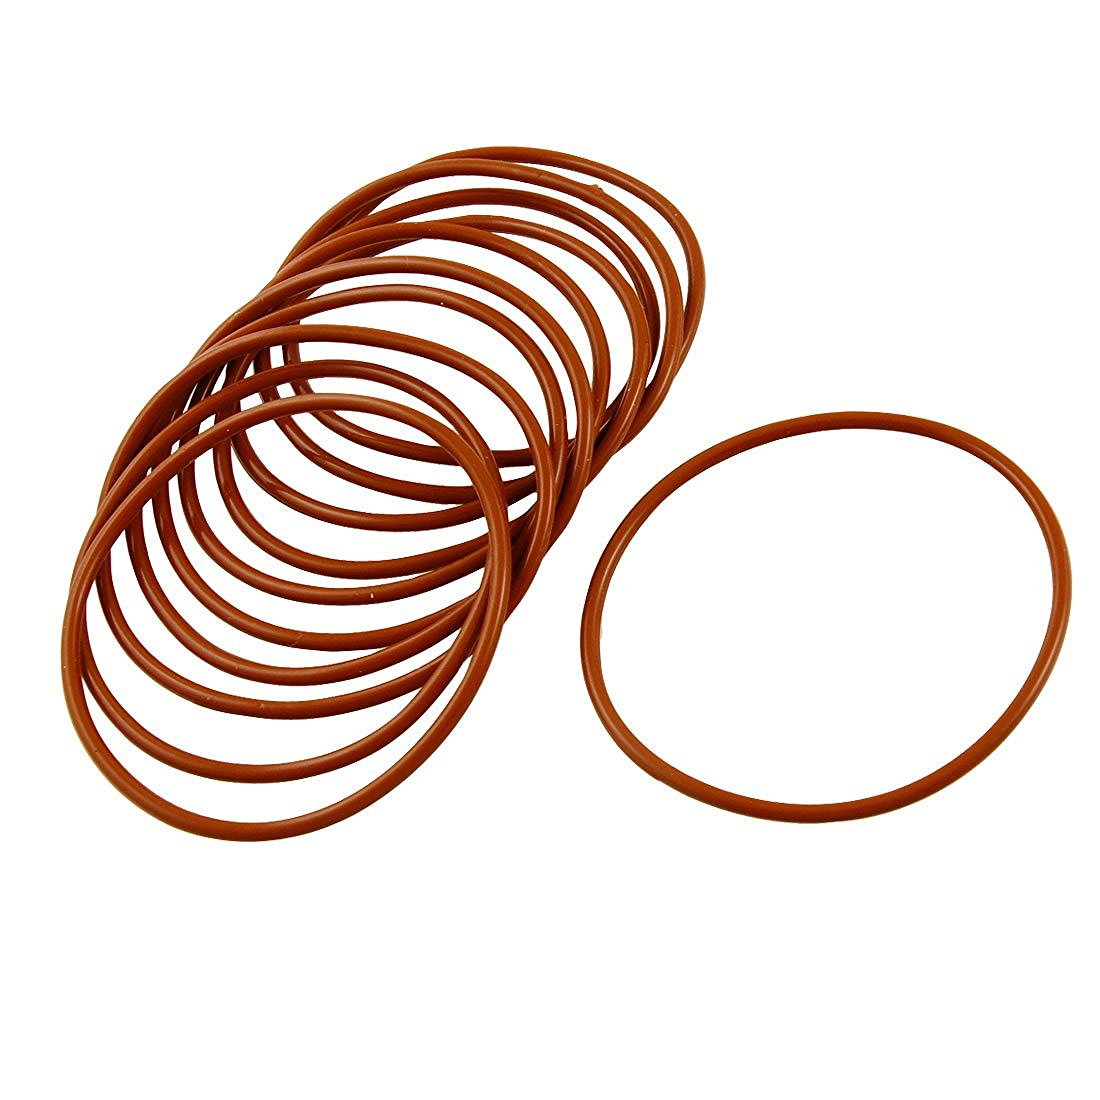 10 Pcs Industrial Silicone O Ring Seal 55mm x 60mm x 2.5mm цена